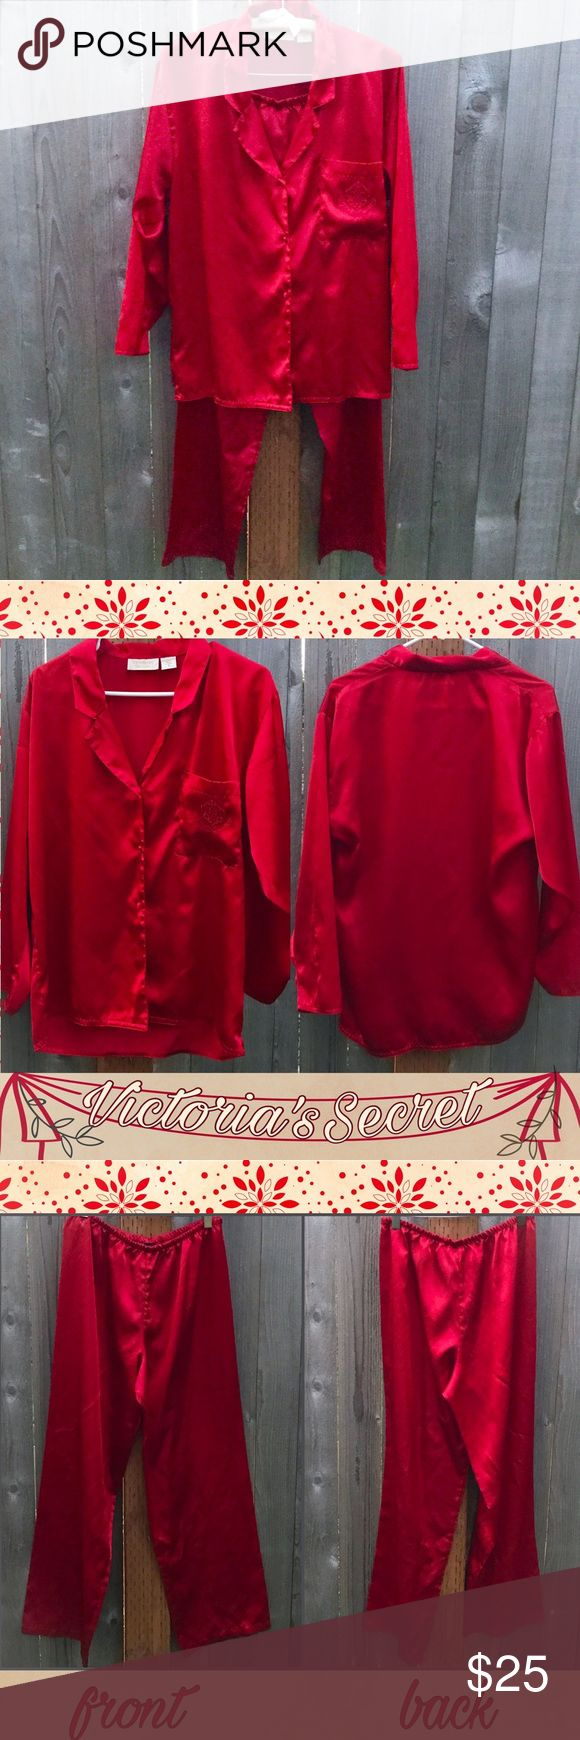 Victoria's Secret Red Satin Pajamas Set / L-XL ❤️ Two piece pajama set by Victoria's Secret in excellent condition! Marked size large but could fit XL as well. Victoria's Secret Intimates & Sleepwear Pajamas